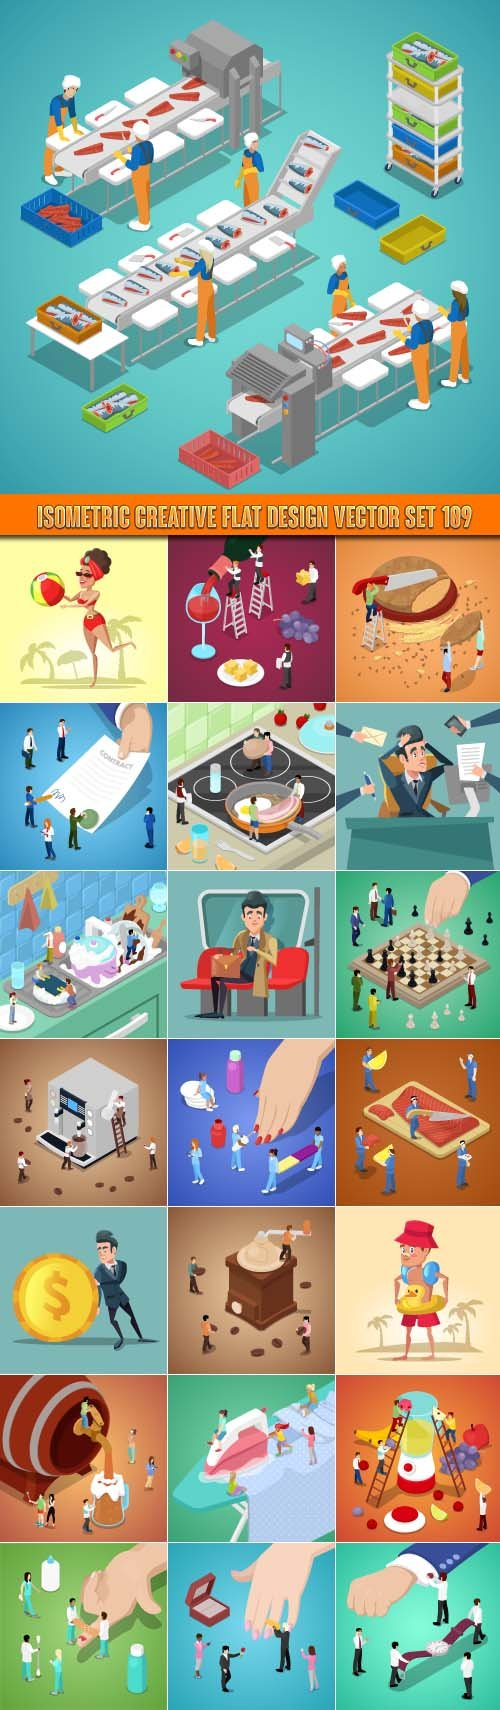 Isometric creative flat design vector set 109